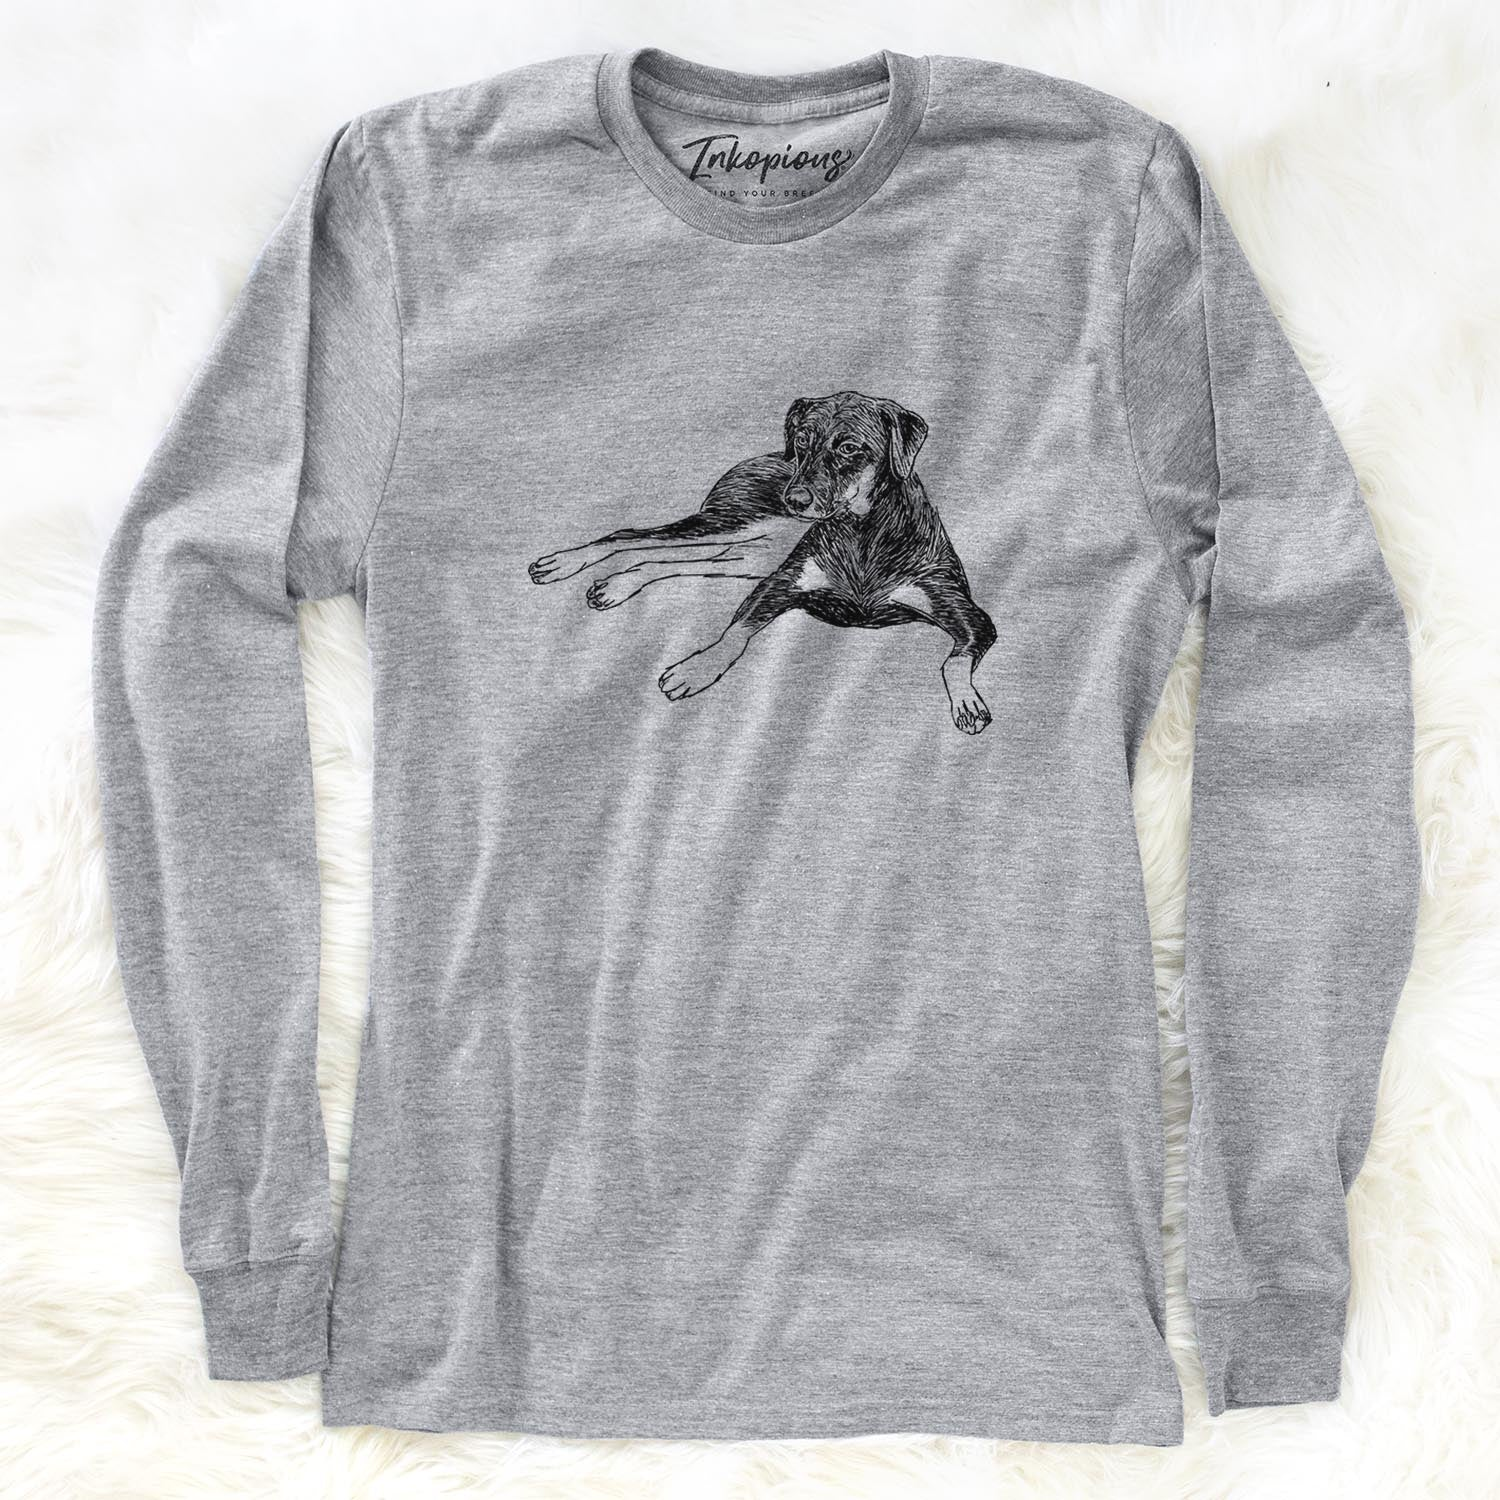 Doodled Penny Lee the Mixed Breed - Long Sleeve Crewneck